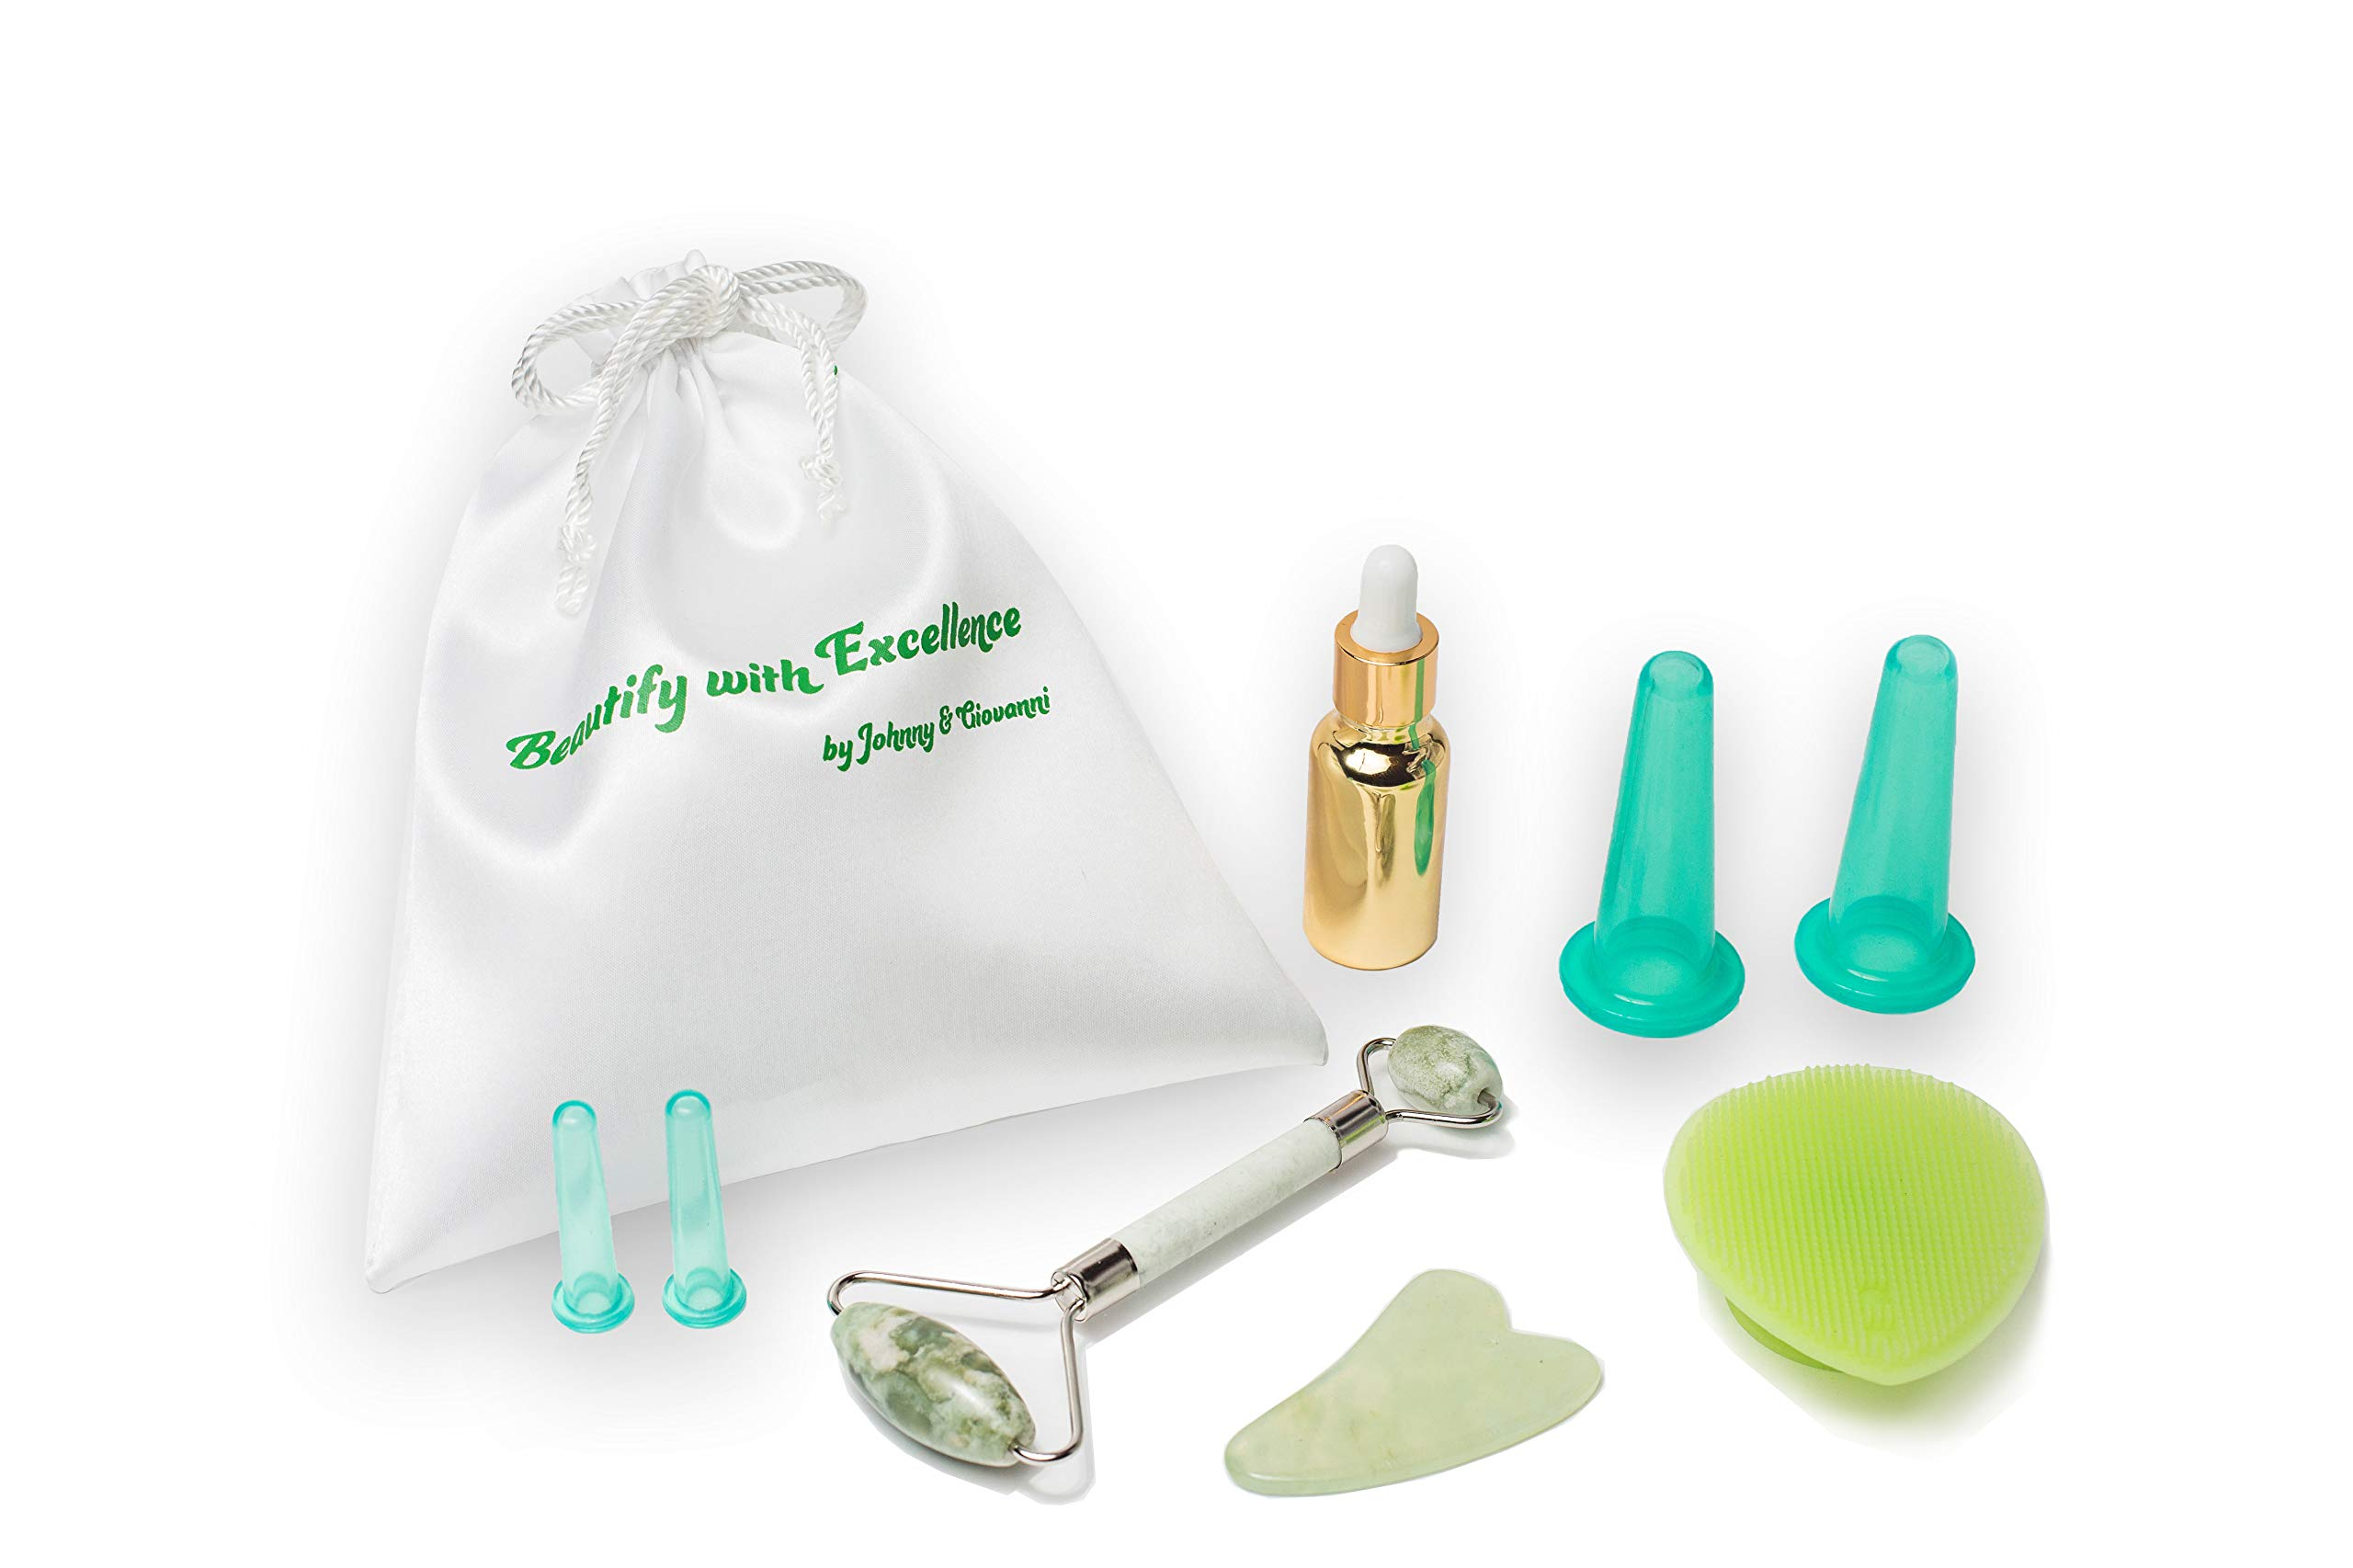 Facial Cupping Set Cupping Therapy Sets Jade Roller and Gua Sha Massager Skin Scrapper Chamomile Essential Oil & Silicone Cleansing Brush